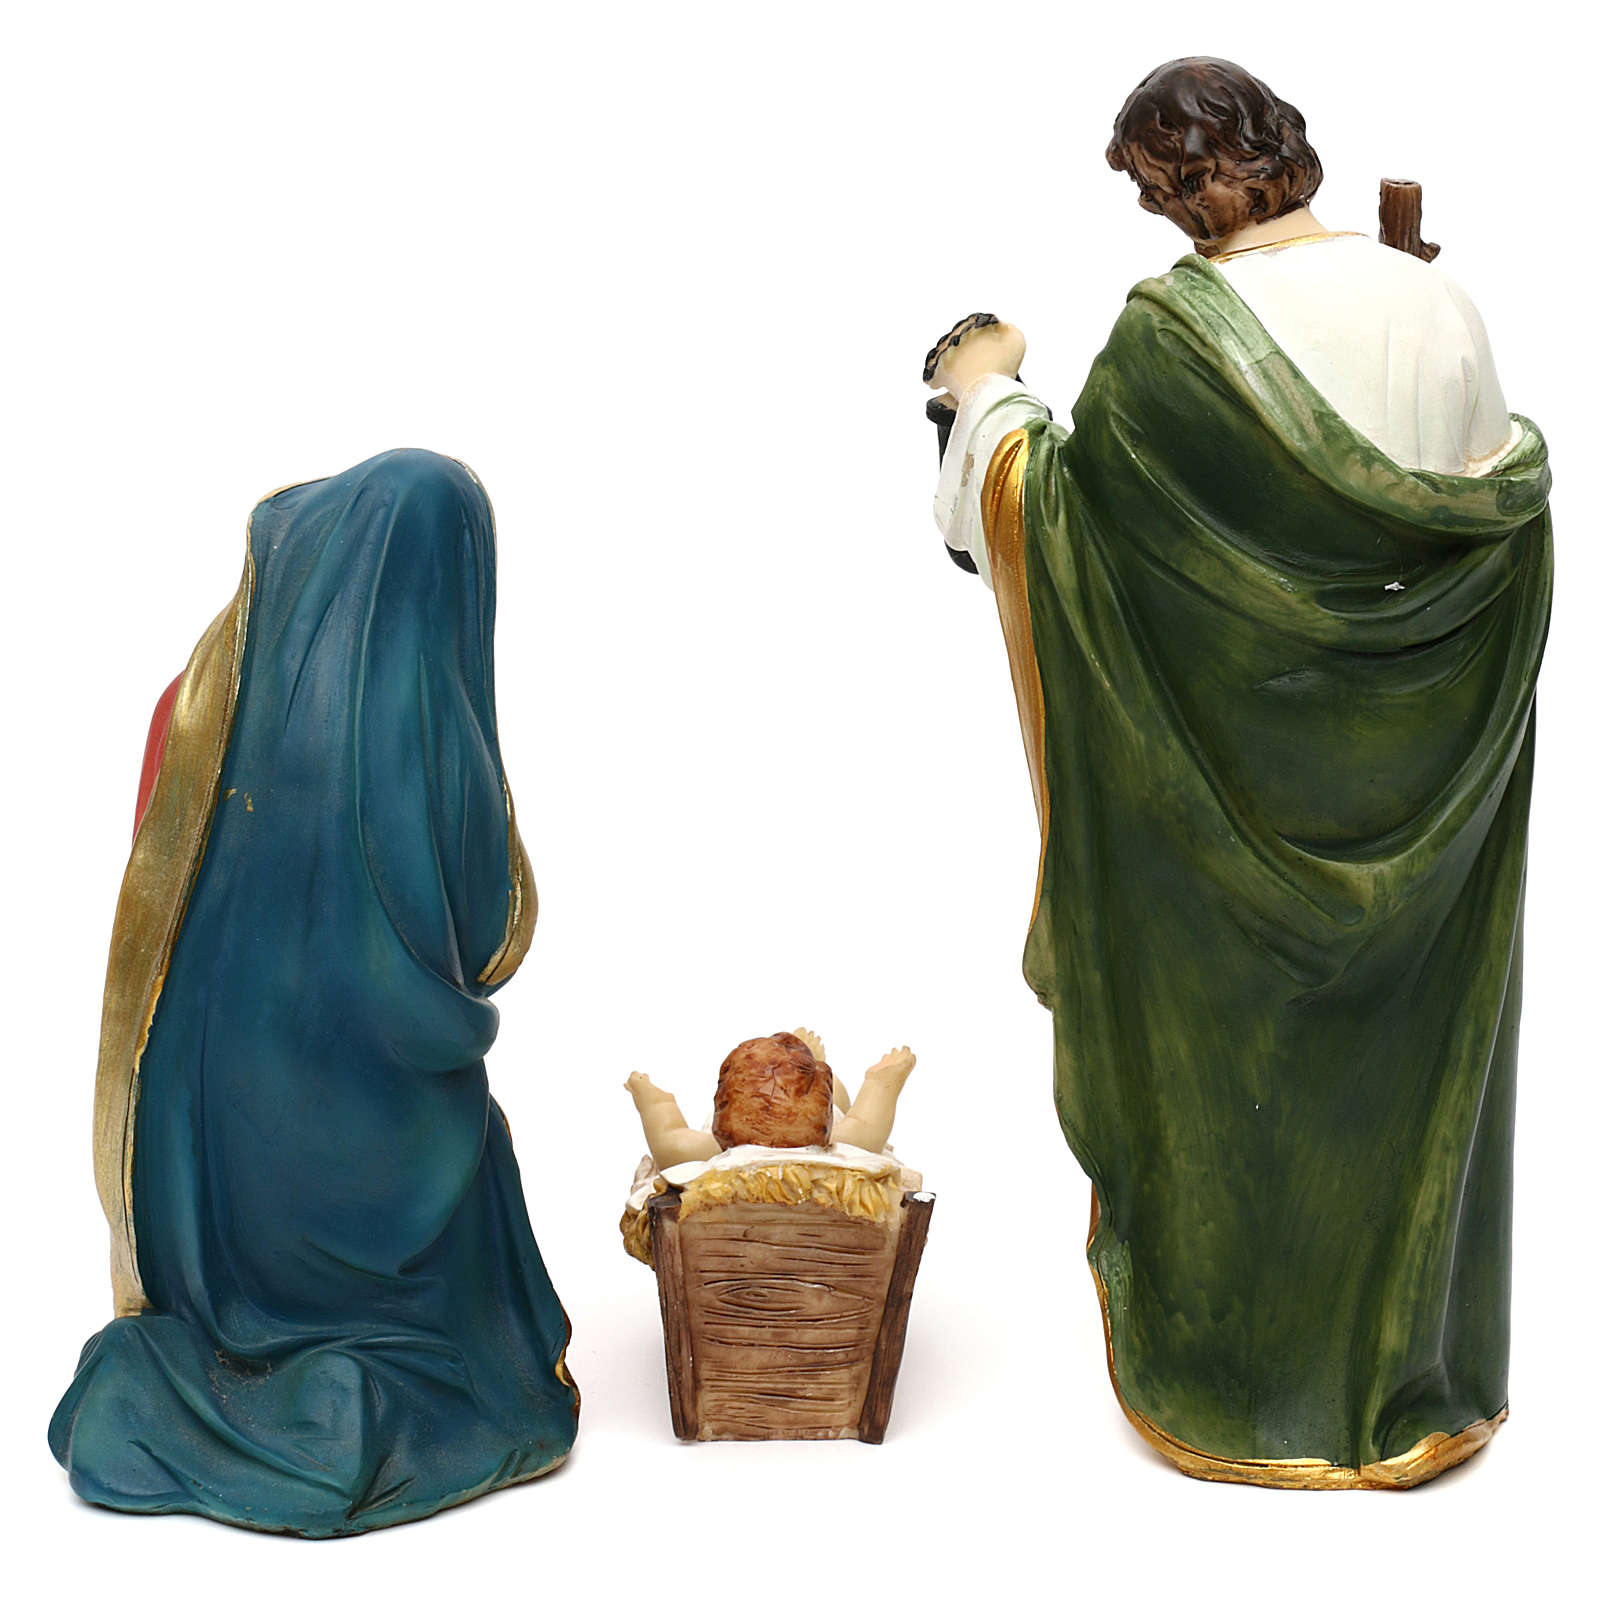 STOCK Nativity scene in resin, 11 statues 20 cm 4